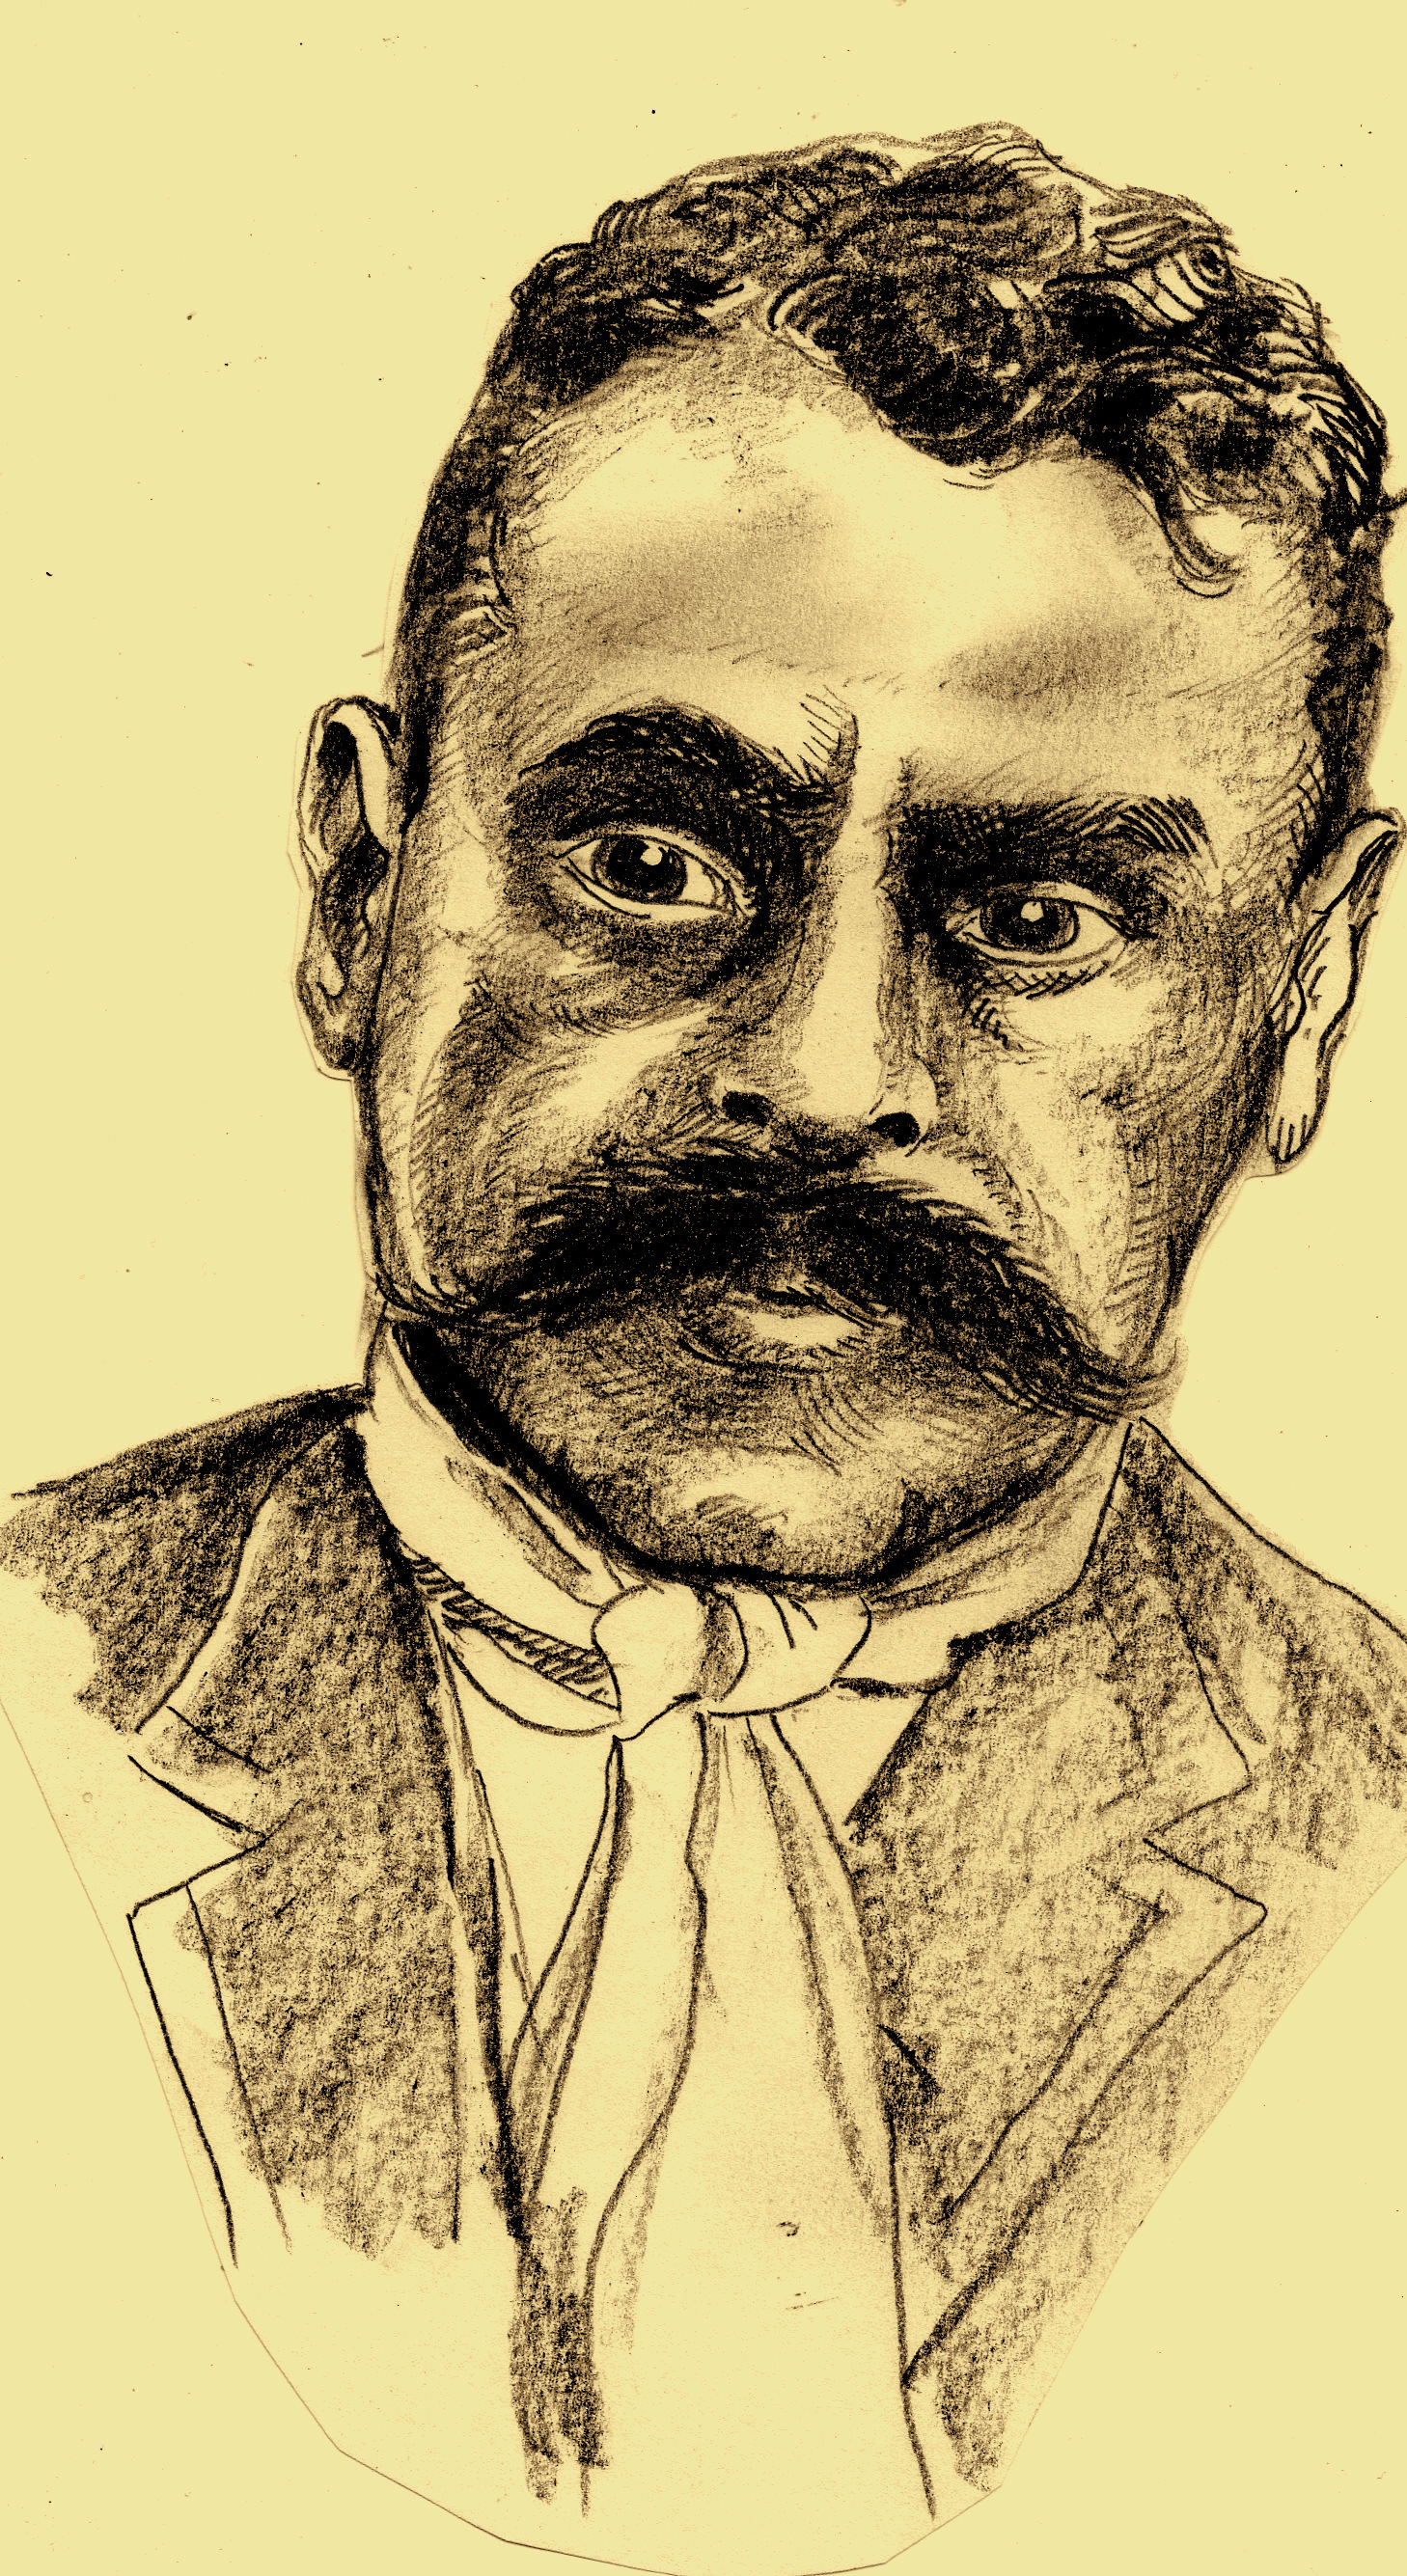 The gallery for emiliano zapata and pancho villa tattoos for Emiliano zapata tattoo